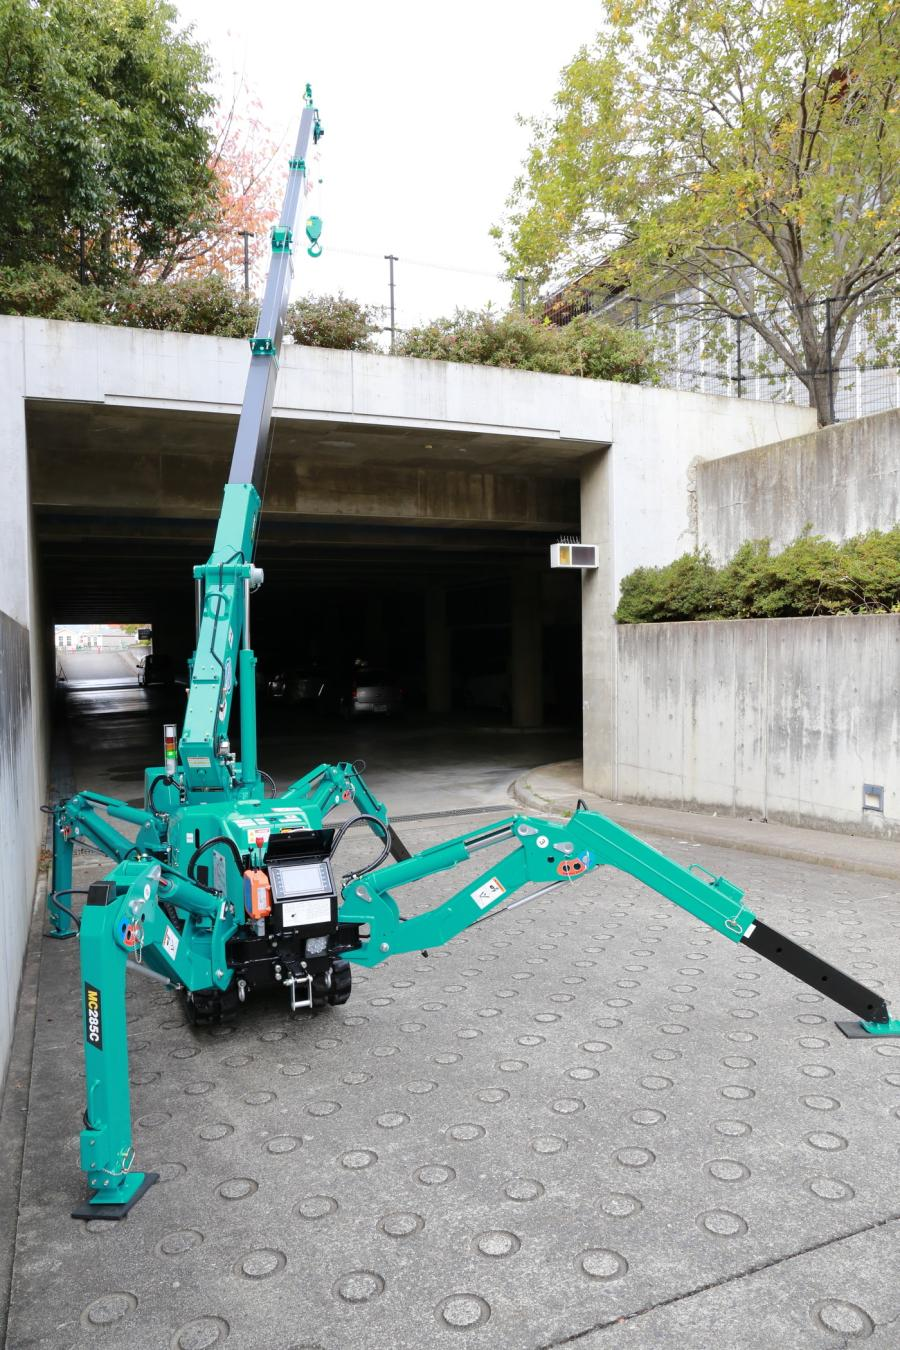 The updated MC285-3 now includes multi-angle outriggers, a state-of-the-art wireless remote control, new generation touch screen moment limiter safety system and a removable electric motor package for maximum versatility - all while maintaining single doorway access to buildings. (Photo Credit: Maeda USA)